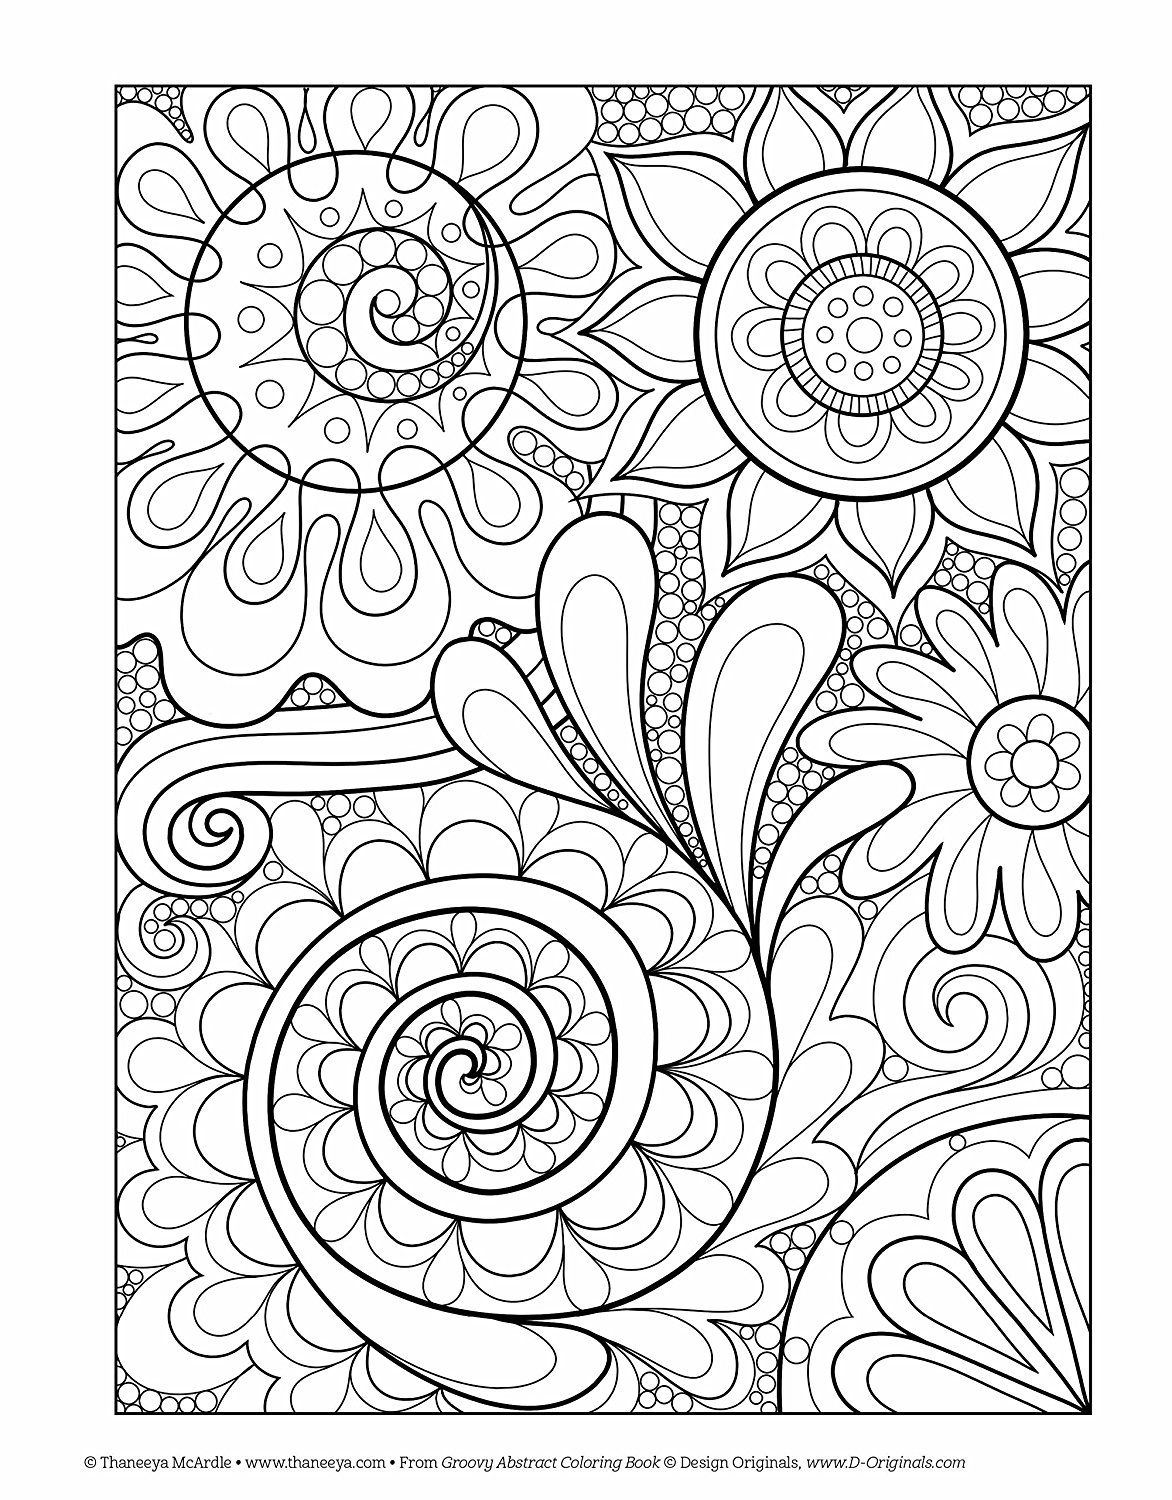 Groovy Abstract Coloring Book Amazon Thaneeya Mcardle